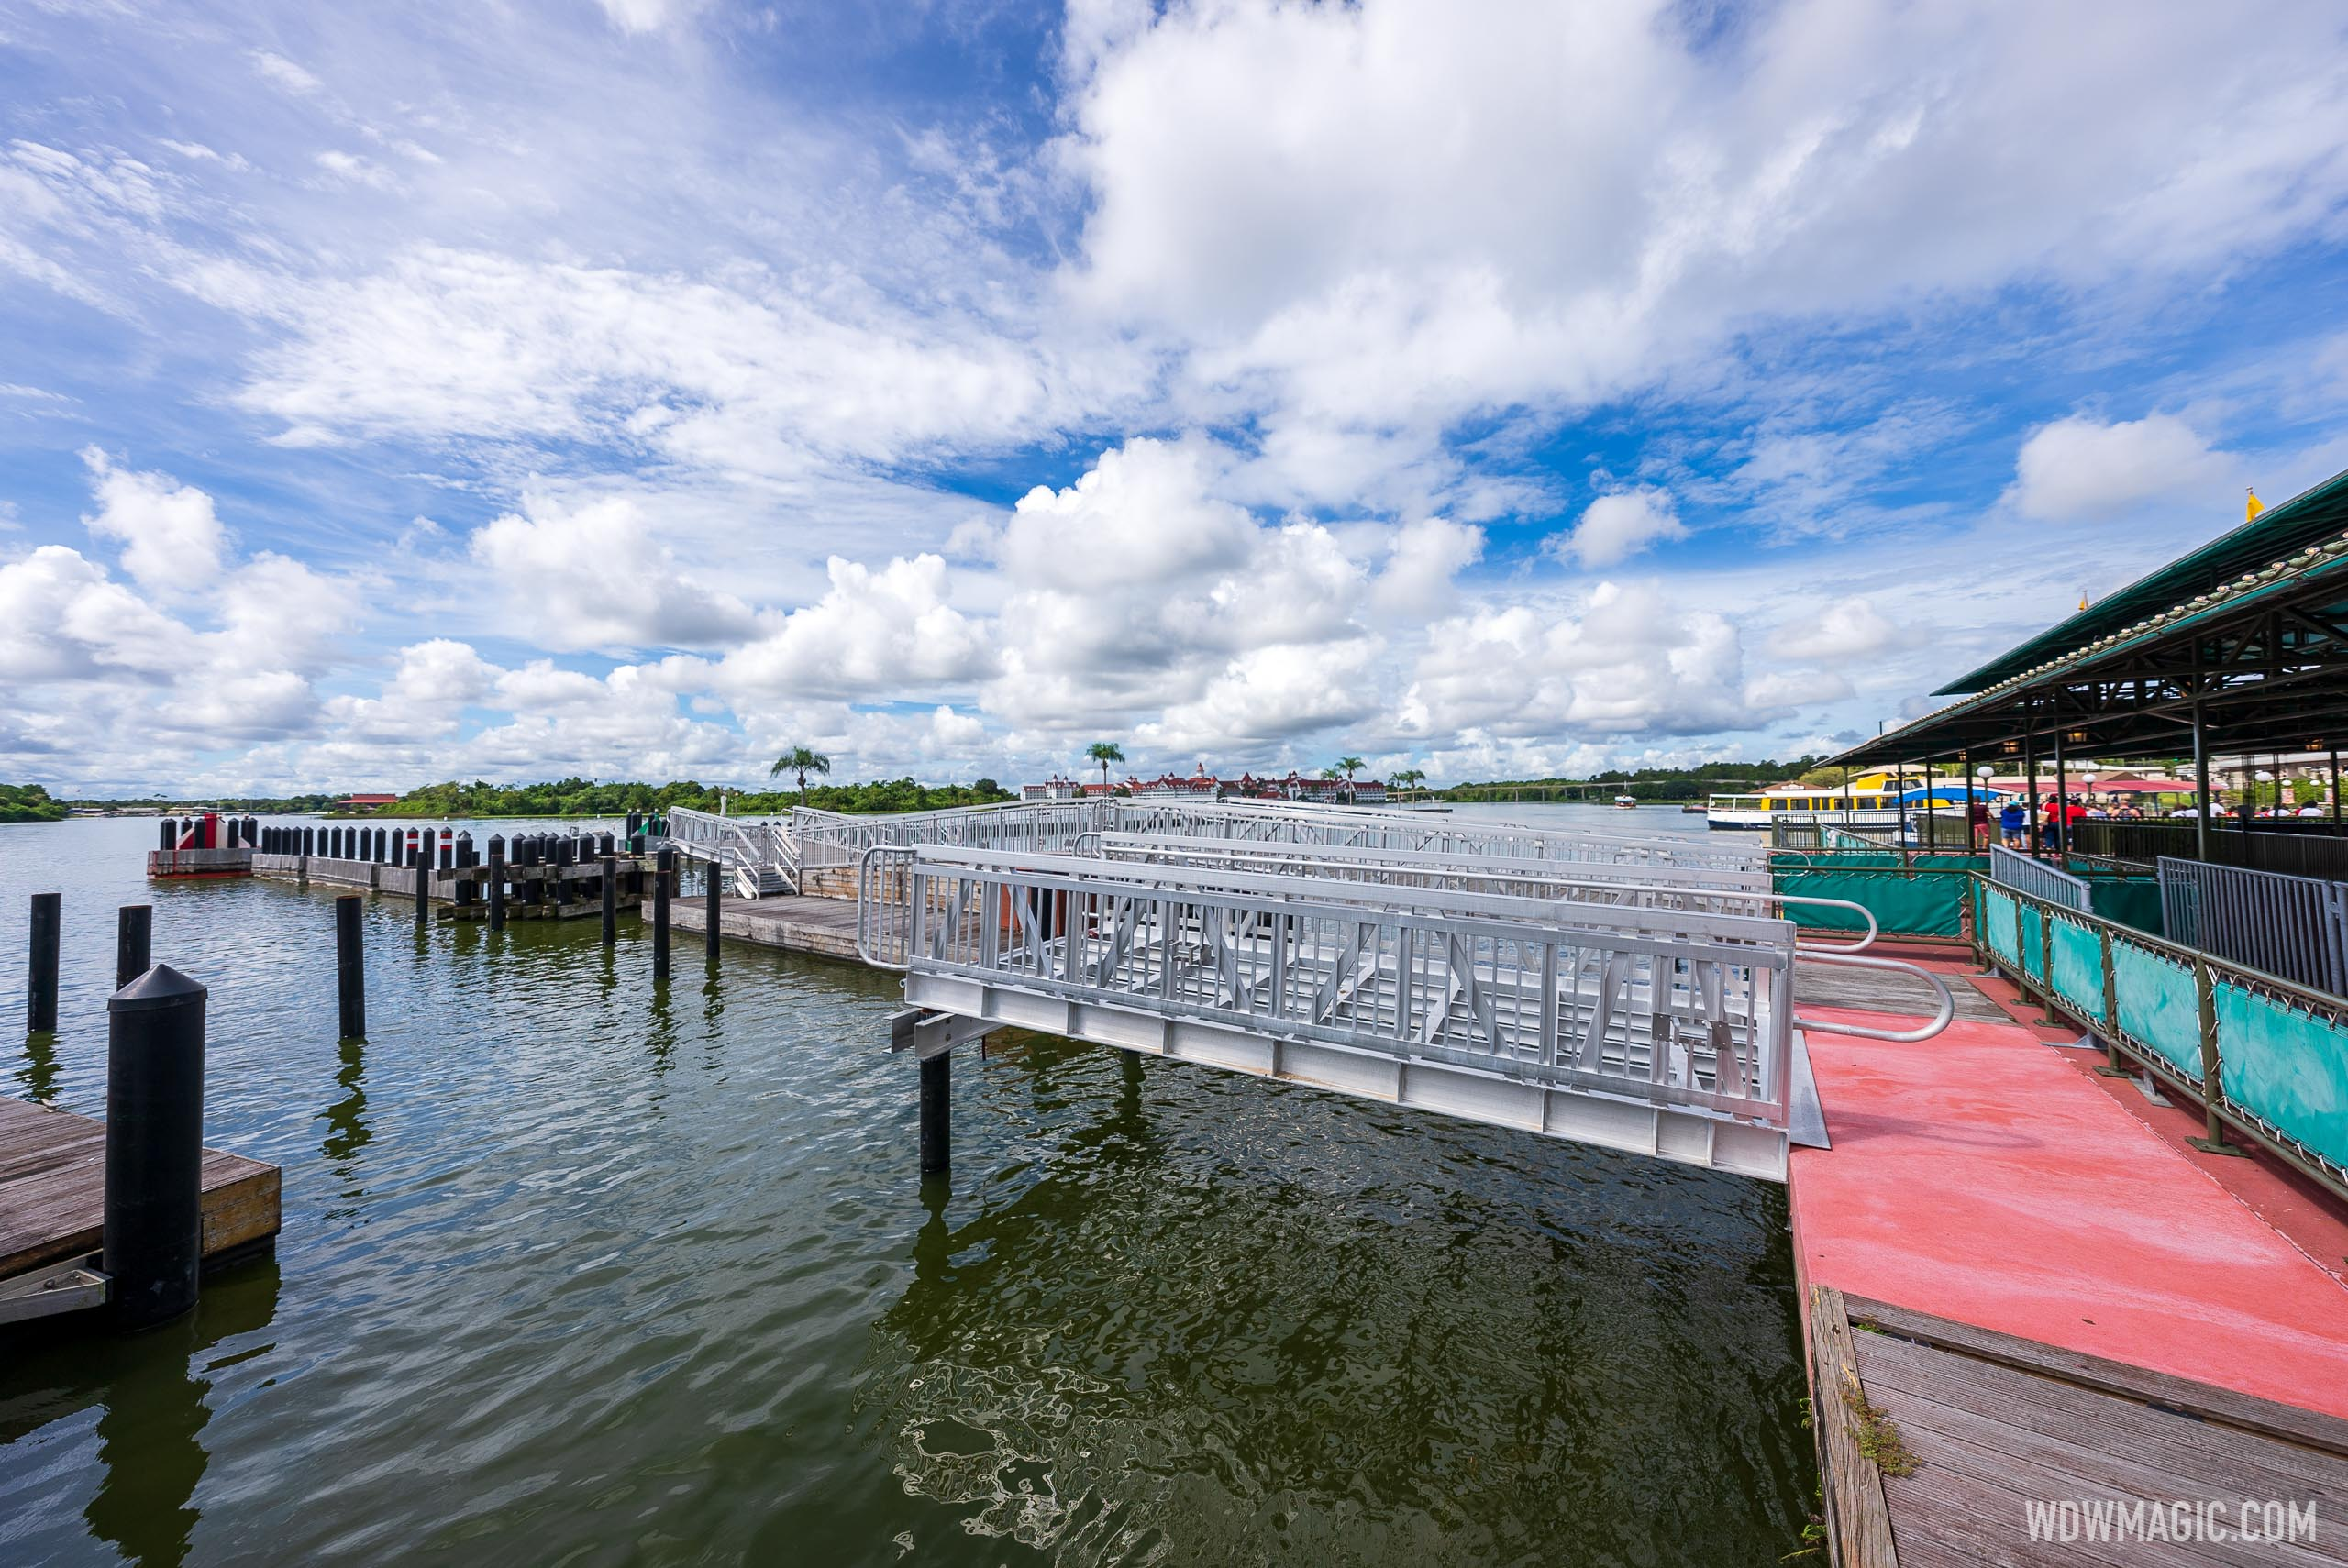 Gangway installation underway at the Magic Kingdom ferry boat dock for second level access